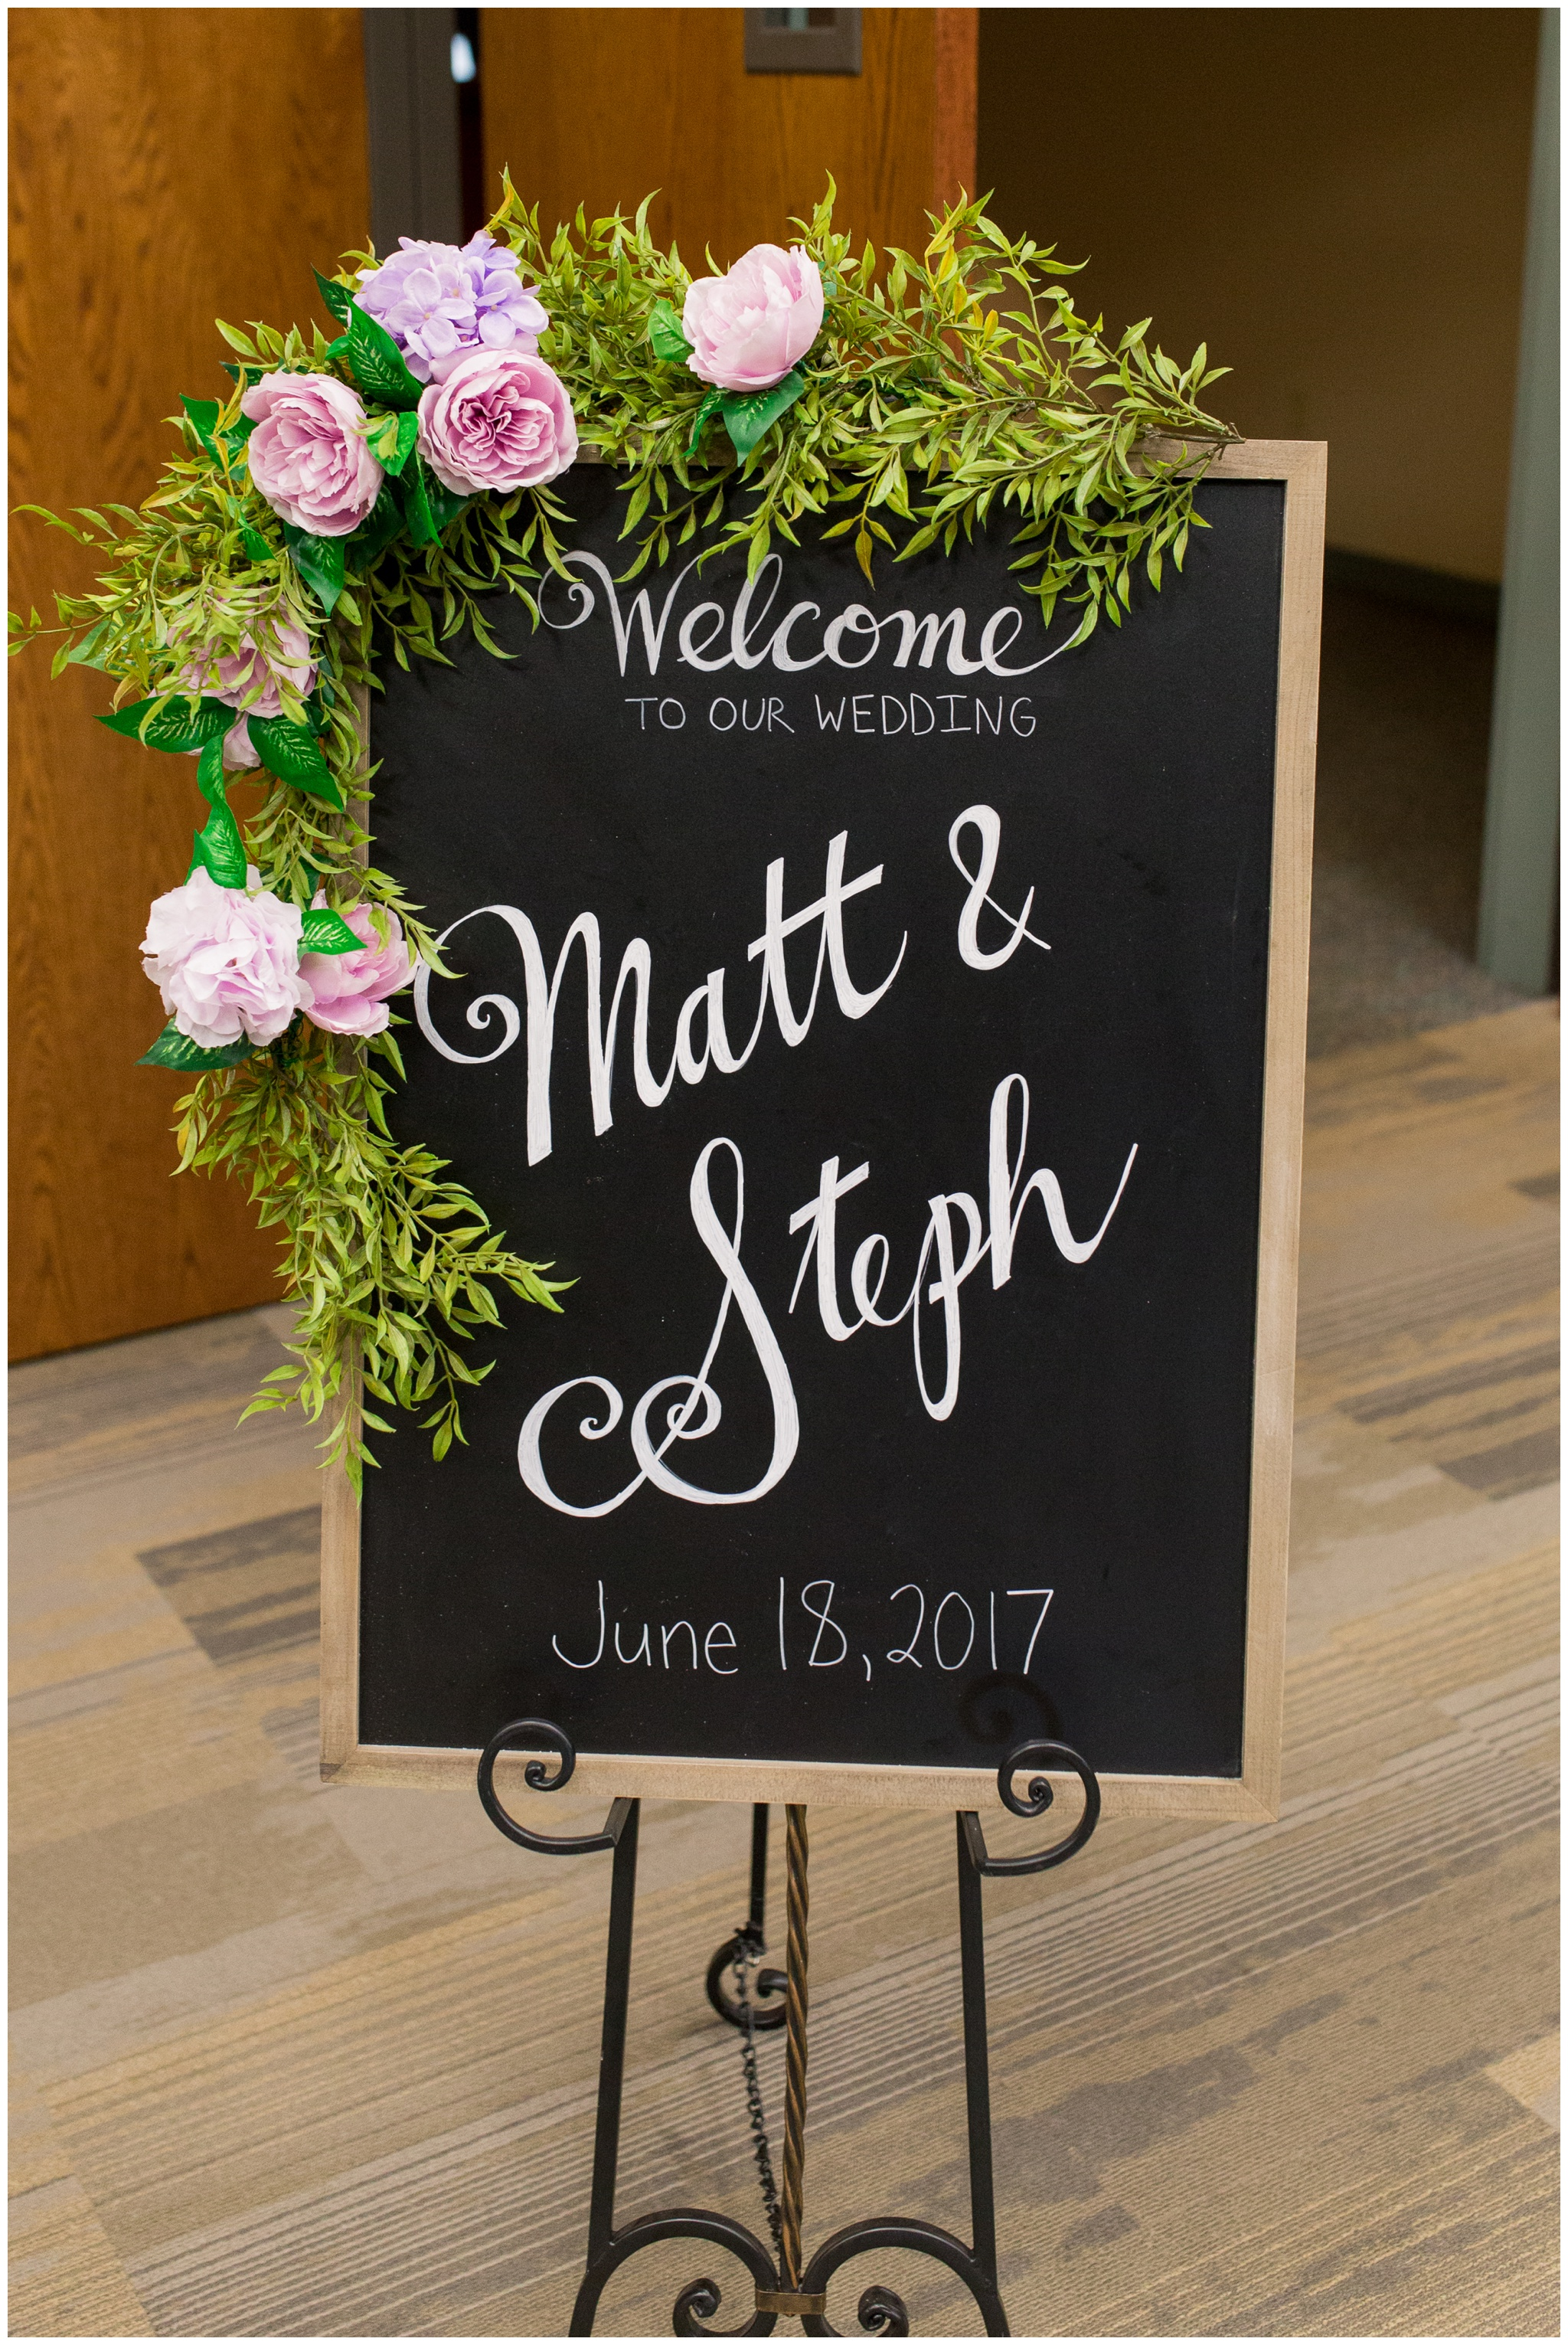 wedding welcome sign in church lobby at Crossroads Community Church in Kokomo Indiana